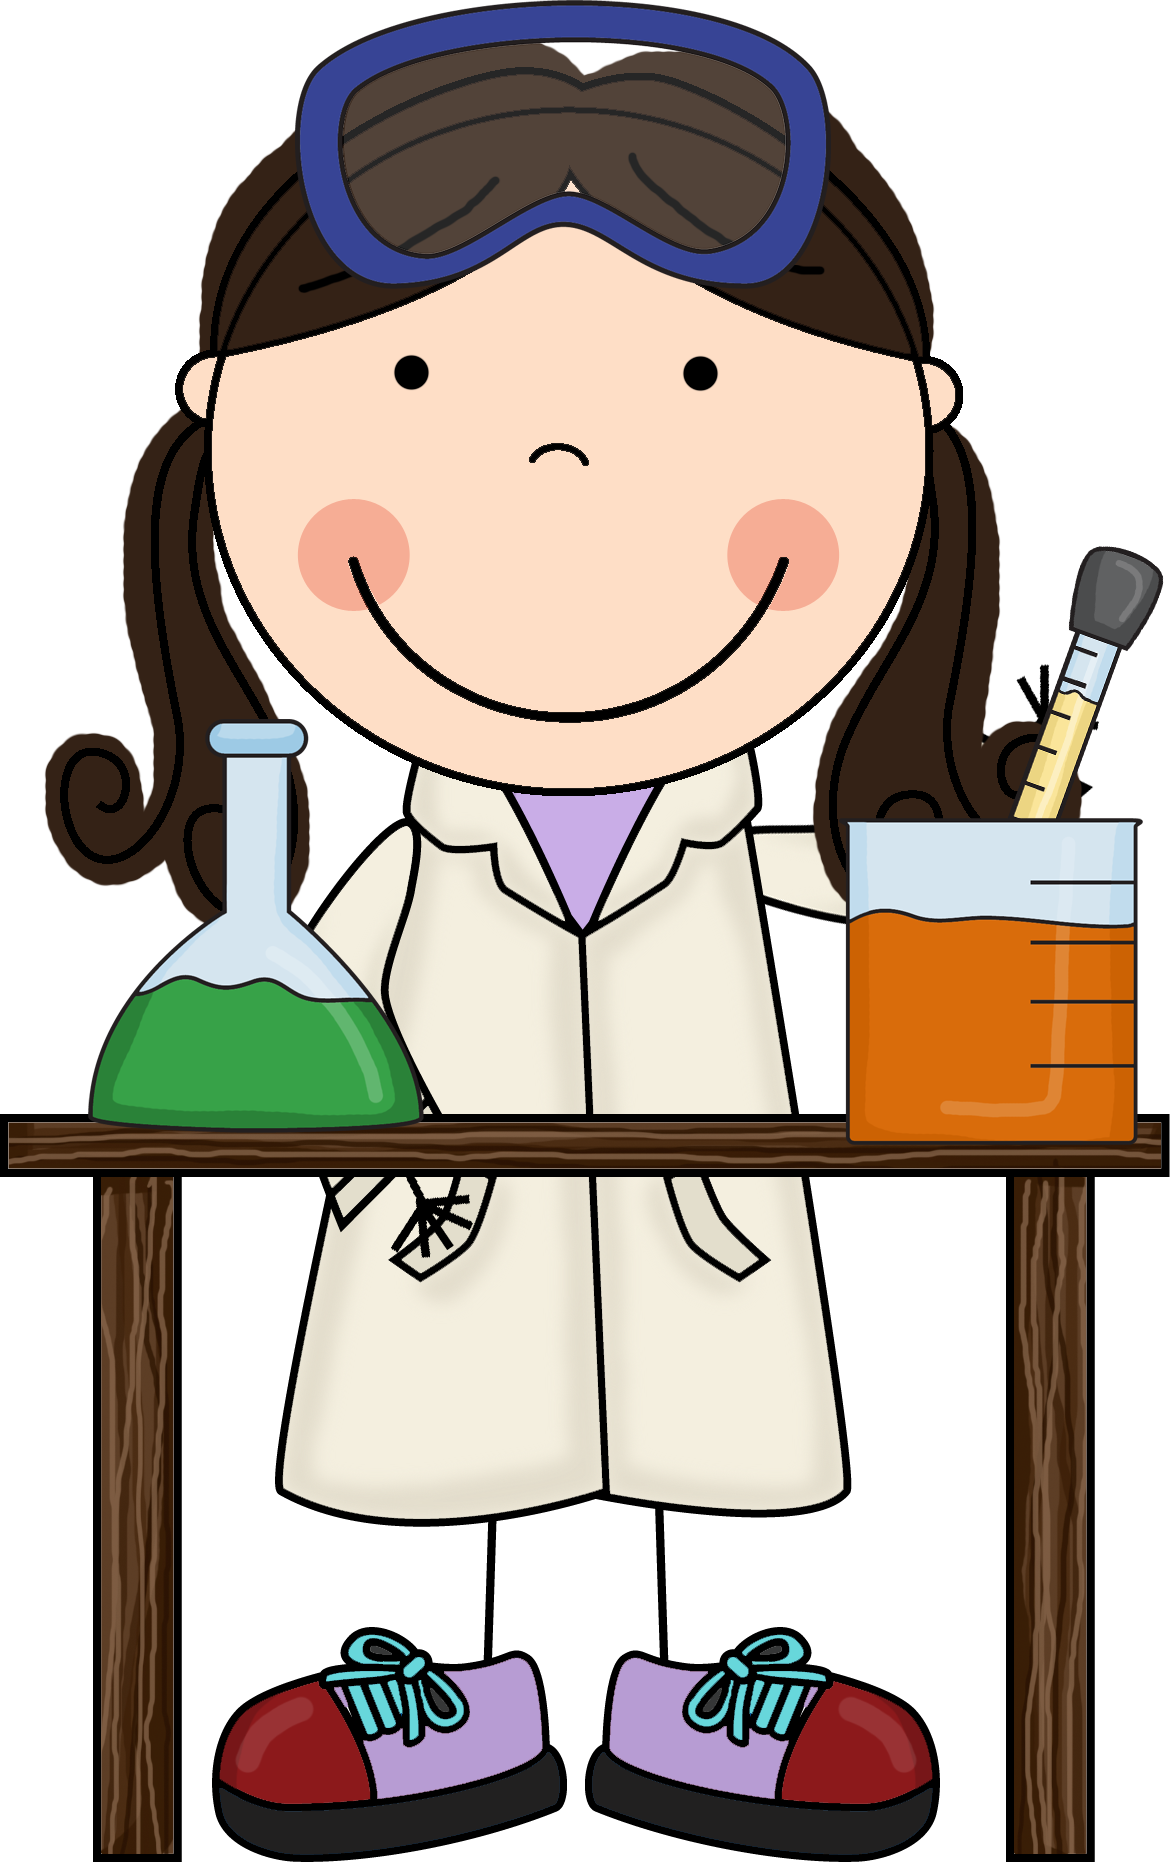 Pics photos clip art cartoon scientist with question mark stock - Science Clipart Free Clipart Best Clipart Best